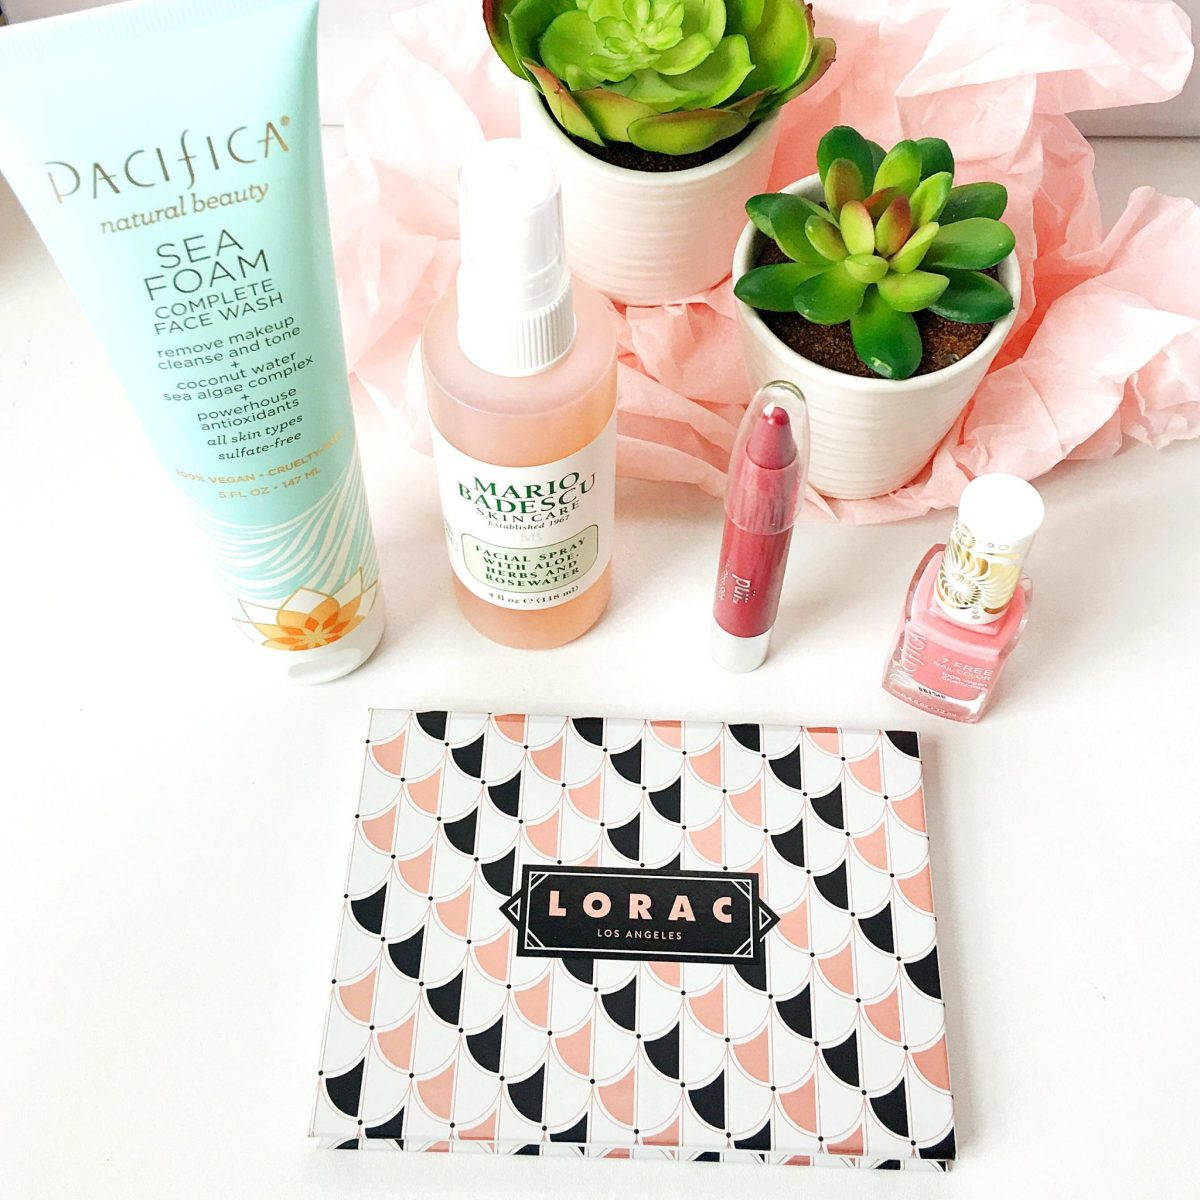 Handpicked Beauty Box Review & Unboxing: Perfect Spring Beauty Refresh!